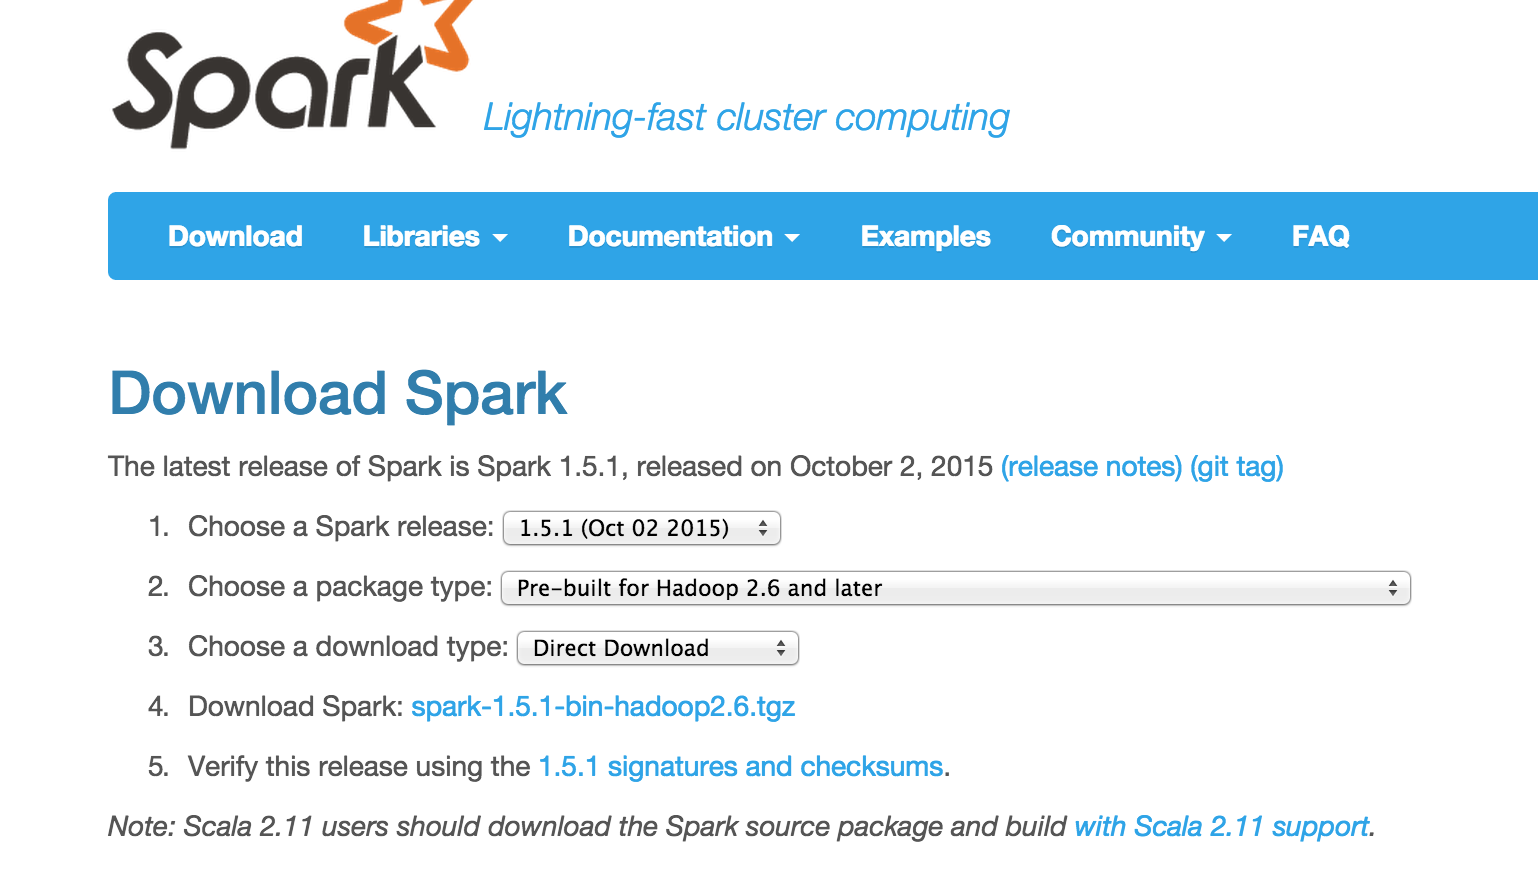 Getting Setup With Spark